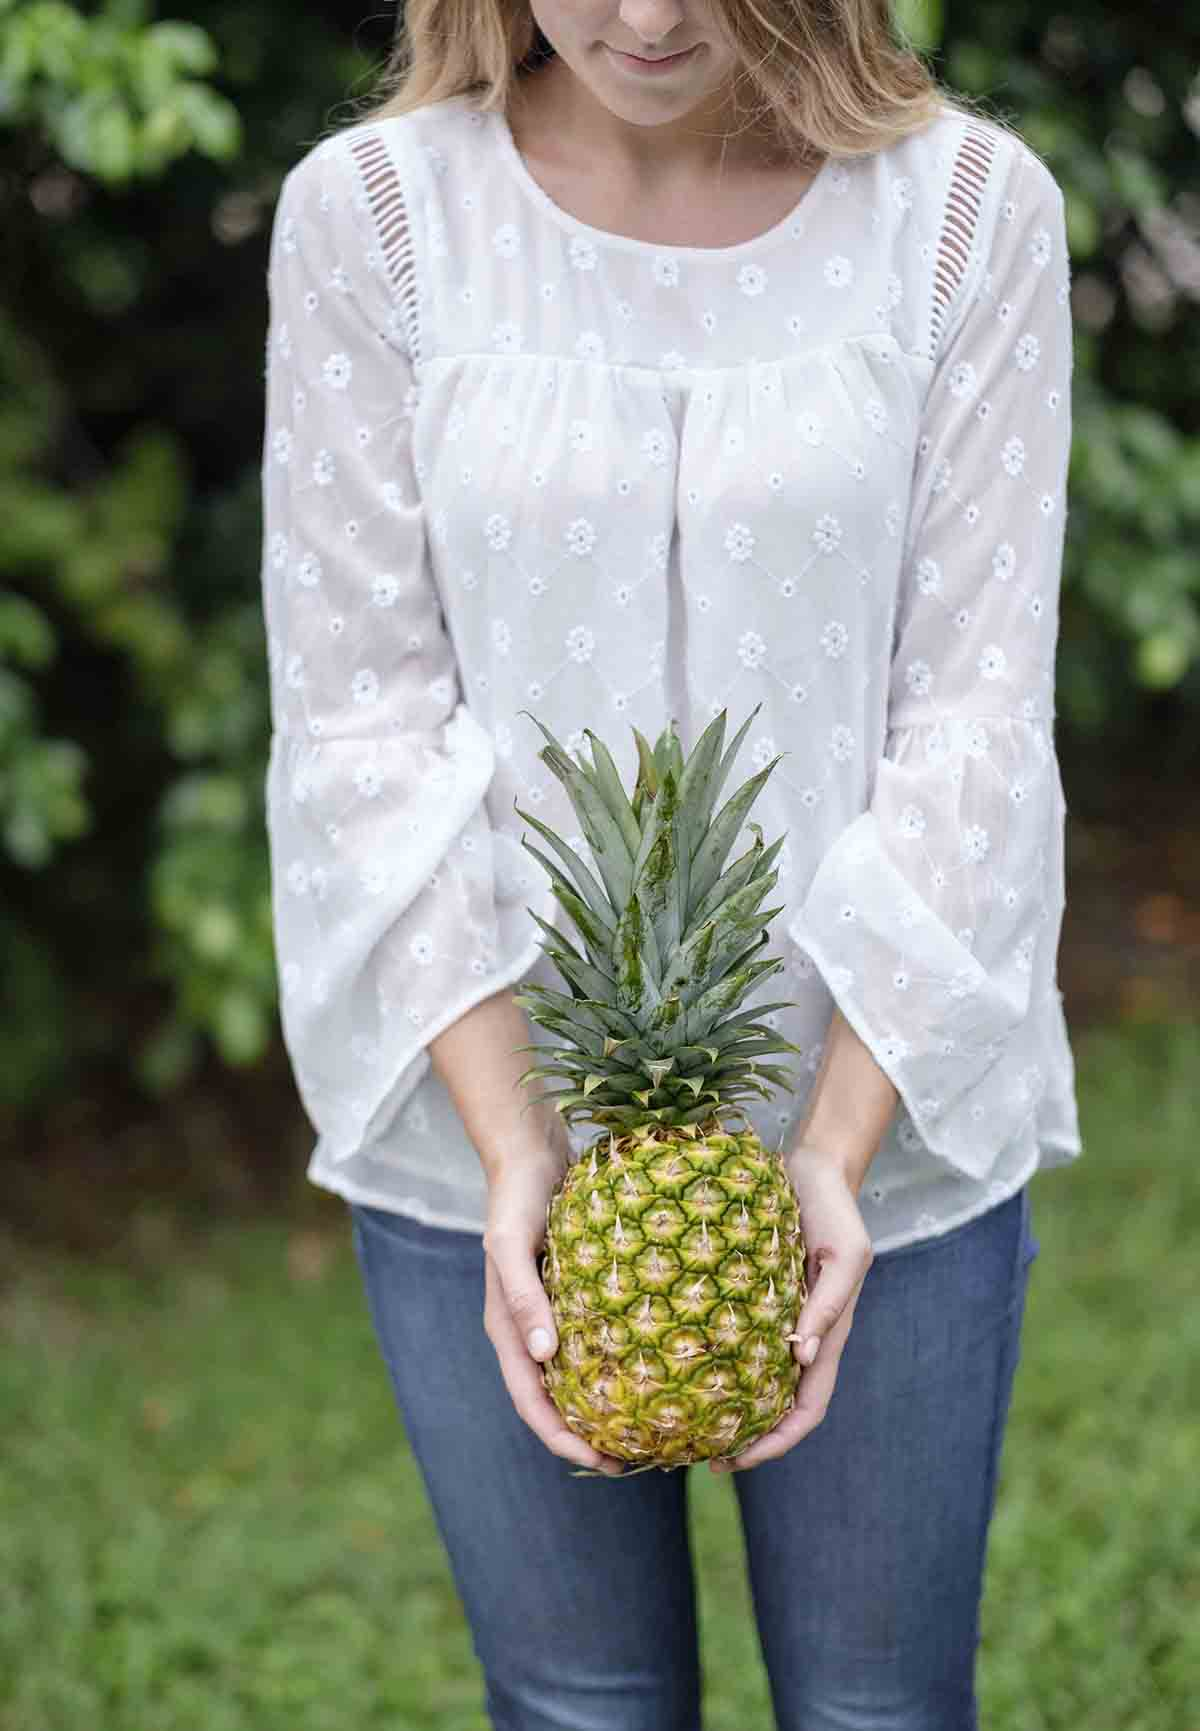 Free stock photo Midsection of woman holding pineapple in park